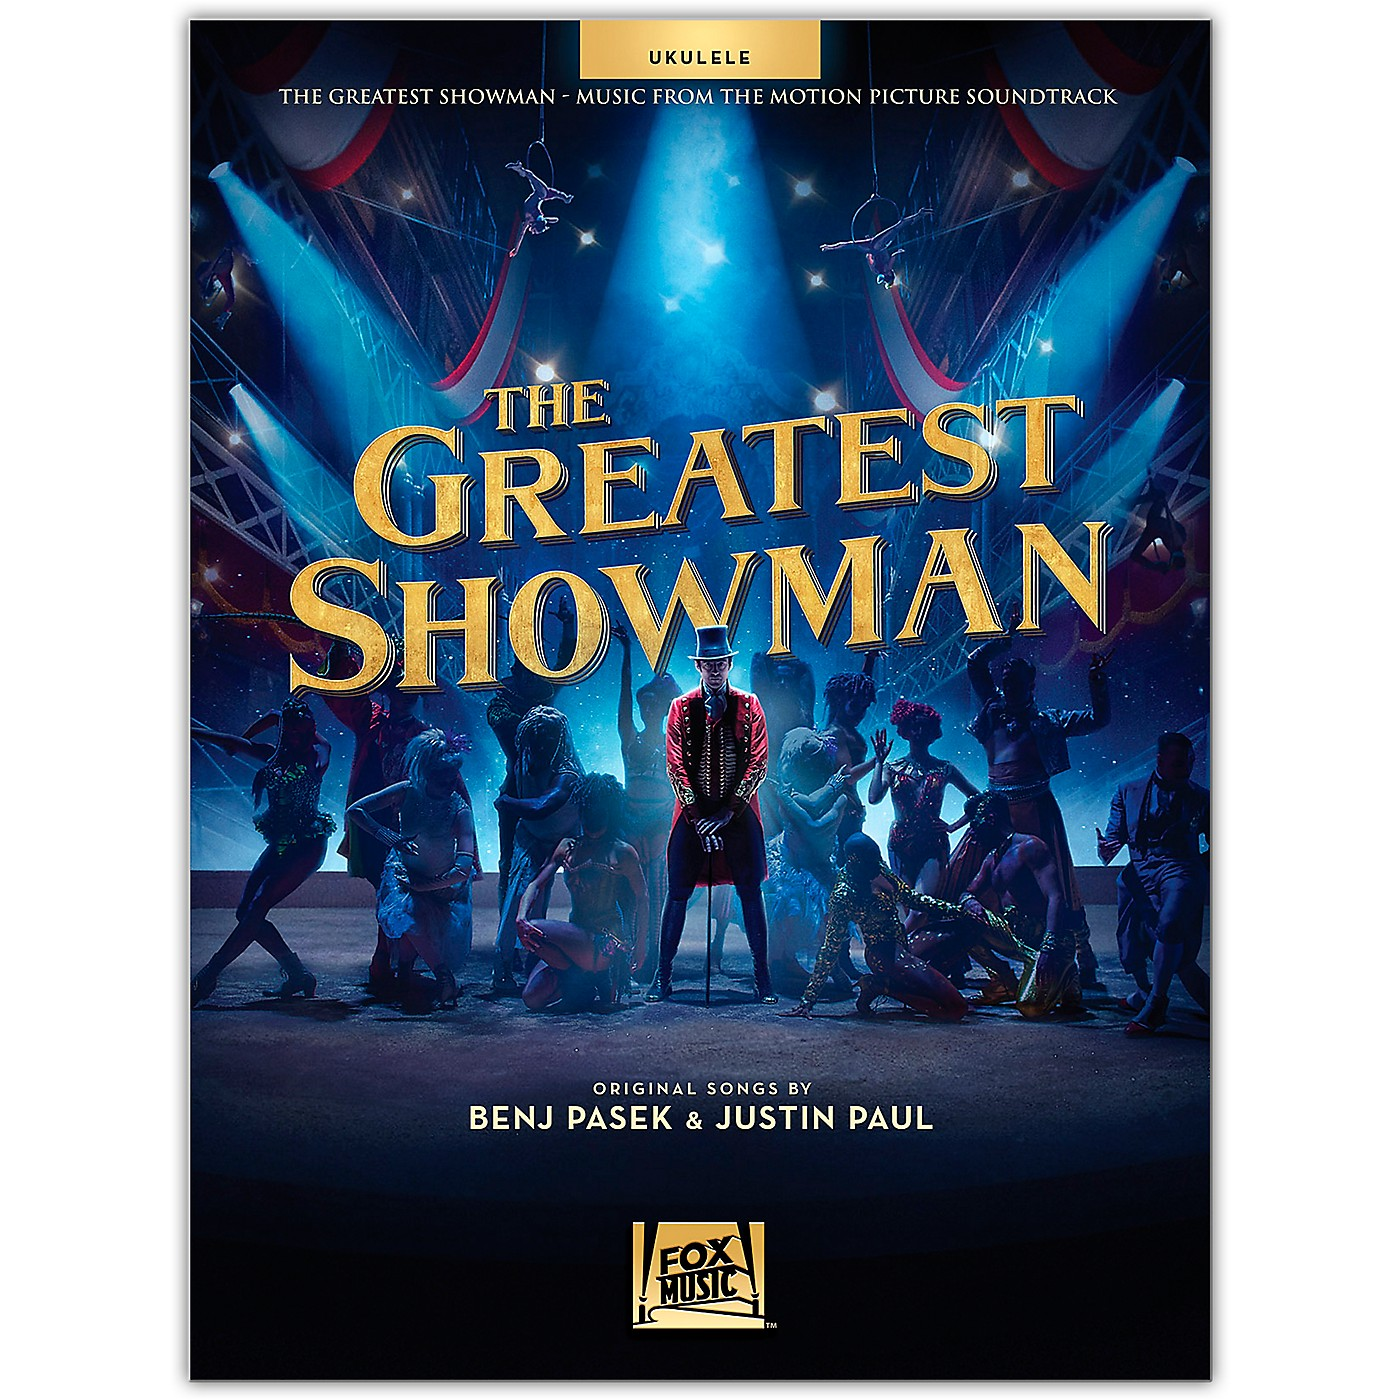 Hal Leonard The Greatest Showman - Music from the Motion Picture Soundtrack For Ukulele thumbnail